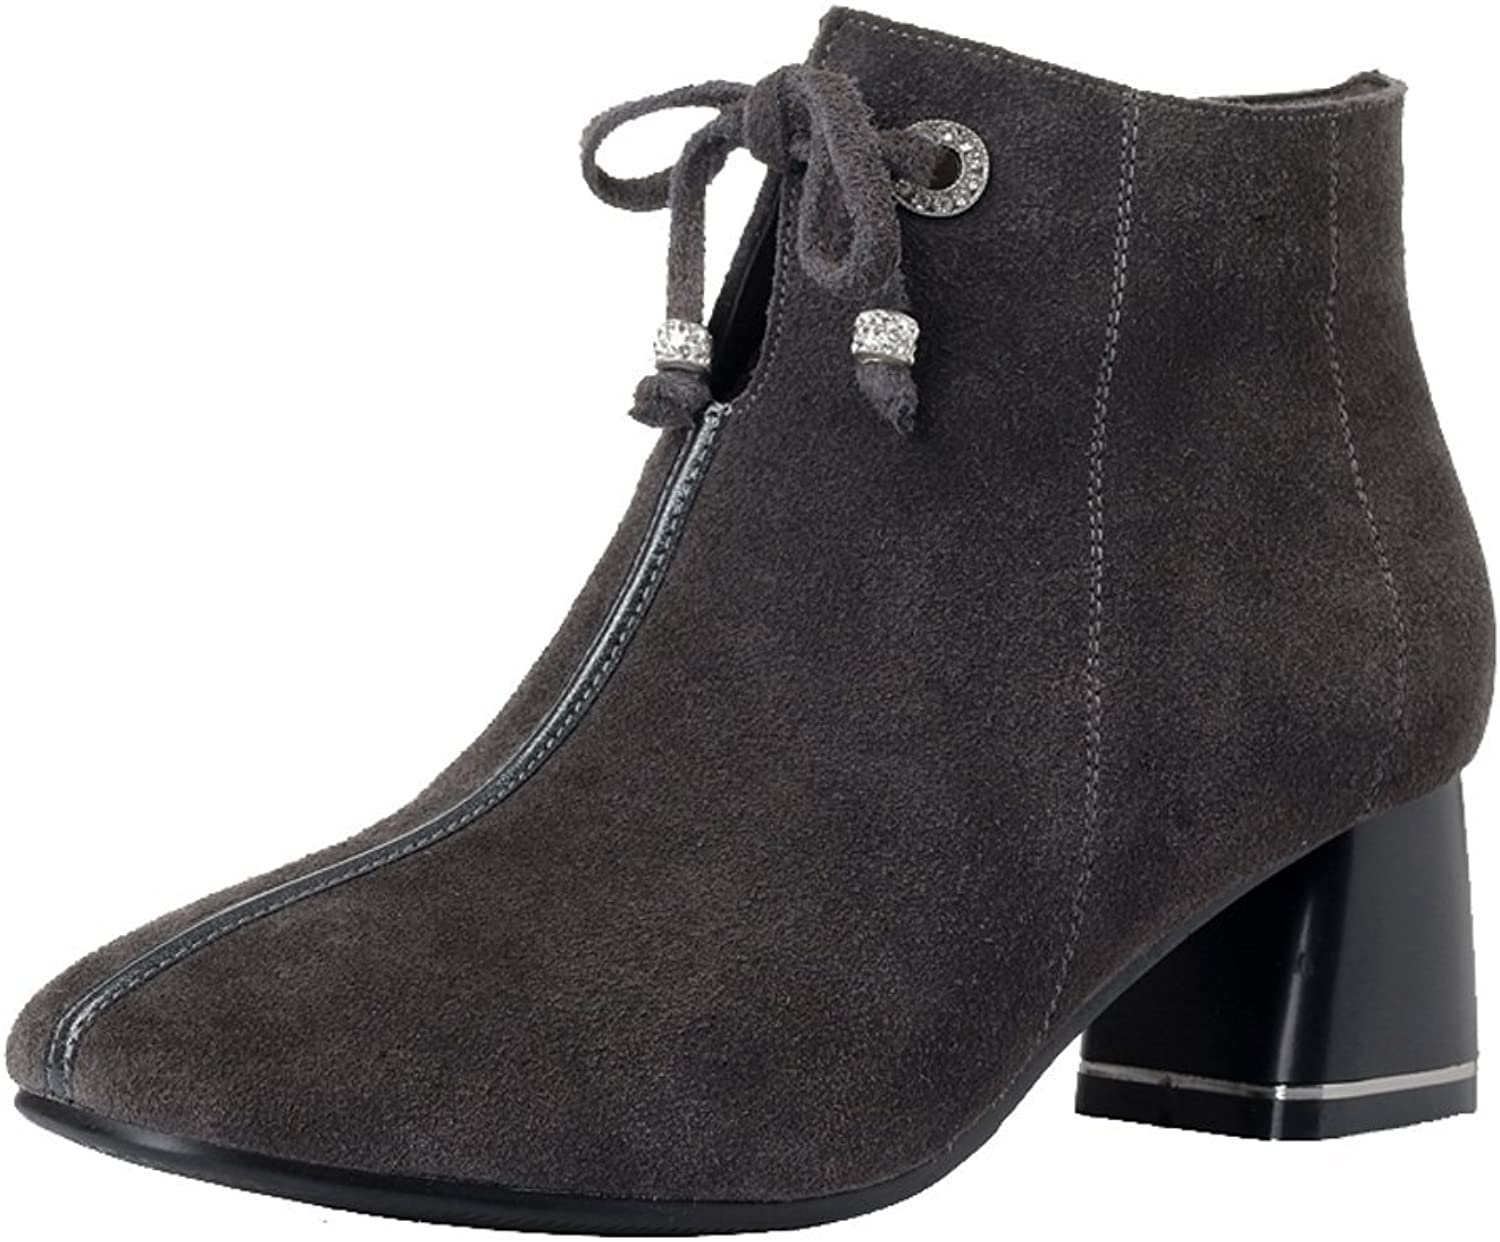 Dethan Women's Suede Genuine Leather Round Toe Chelsea Boot Chunky Middle Heel Ankle Bootie